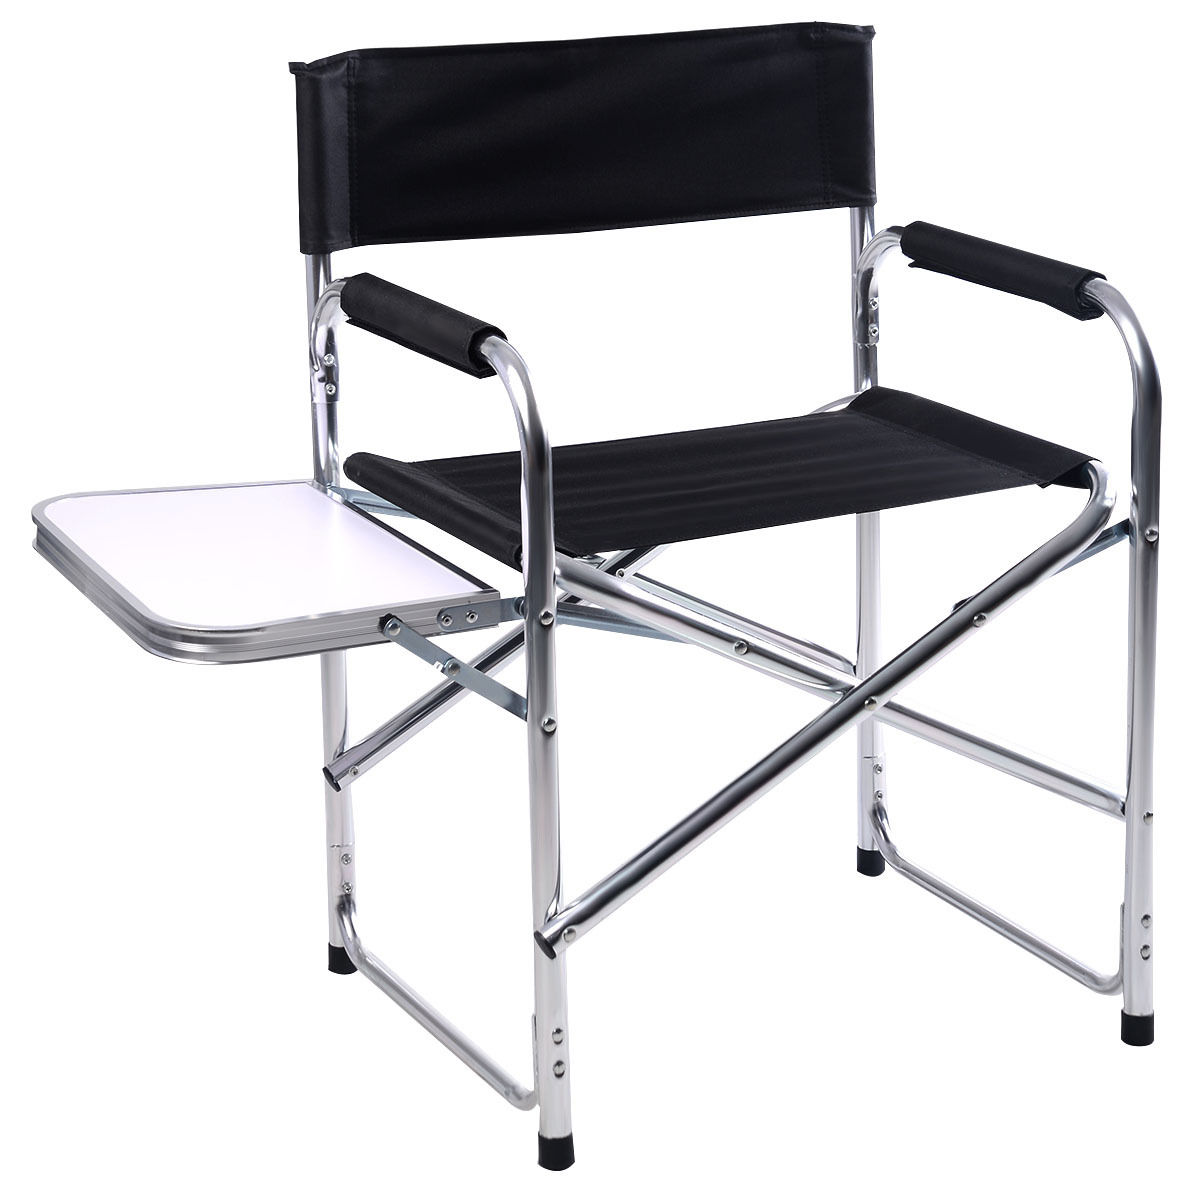 Folding Directors Chair With Side Table Costway Aluminum Folding Director S Chair With Side Table Camping Traveling